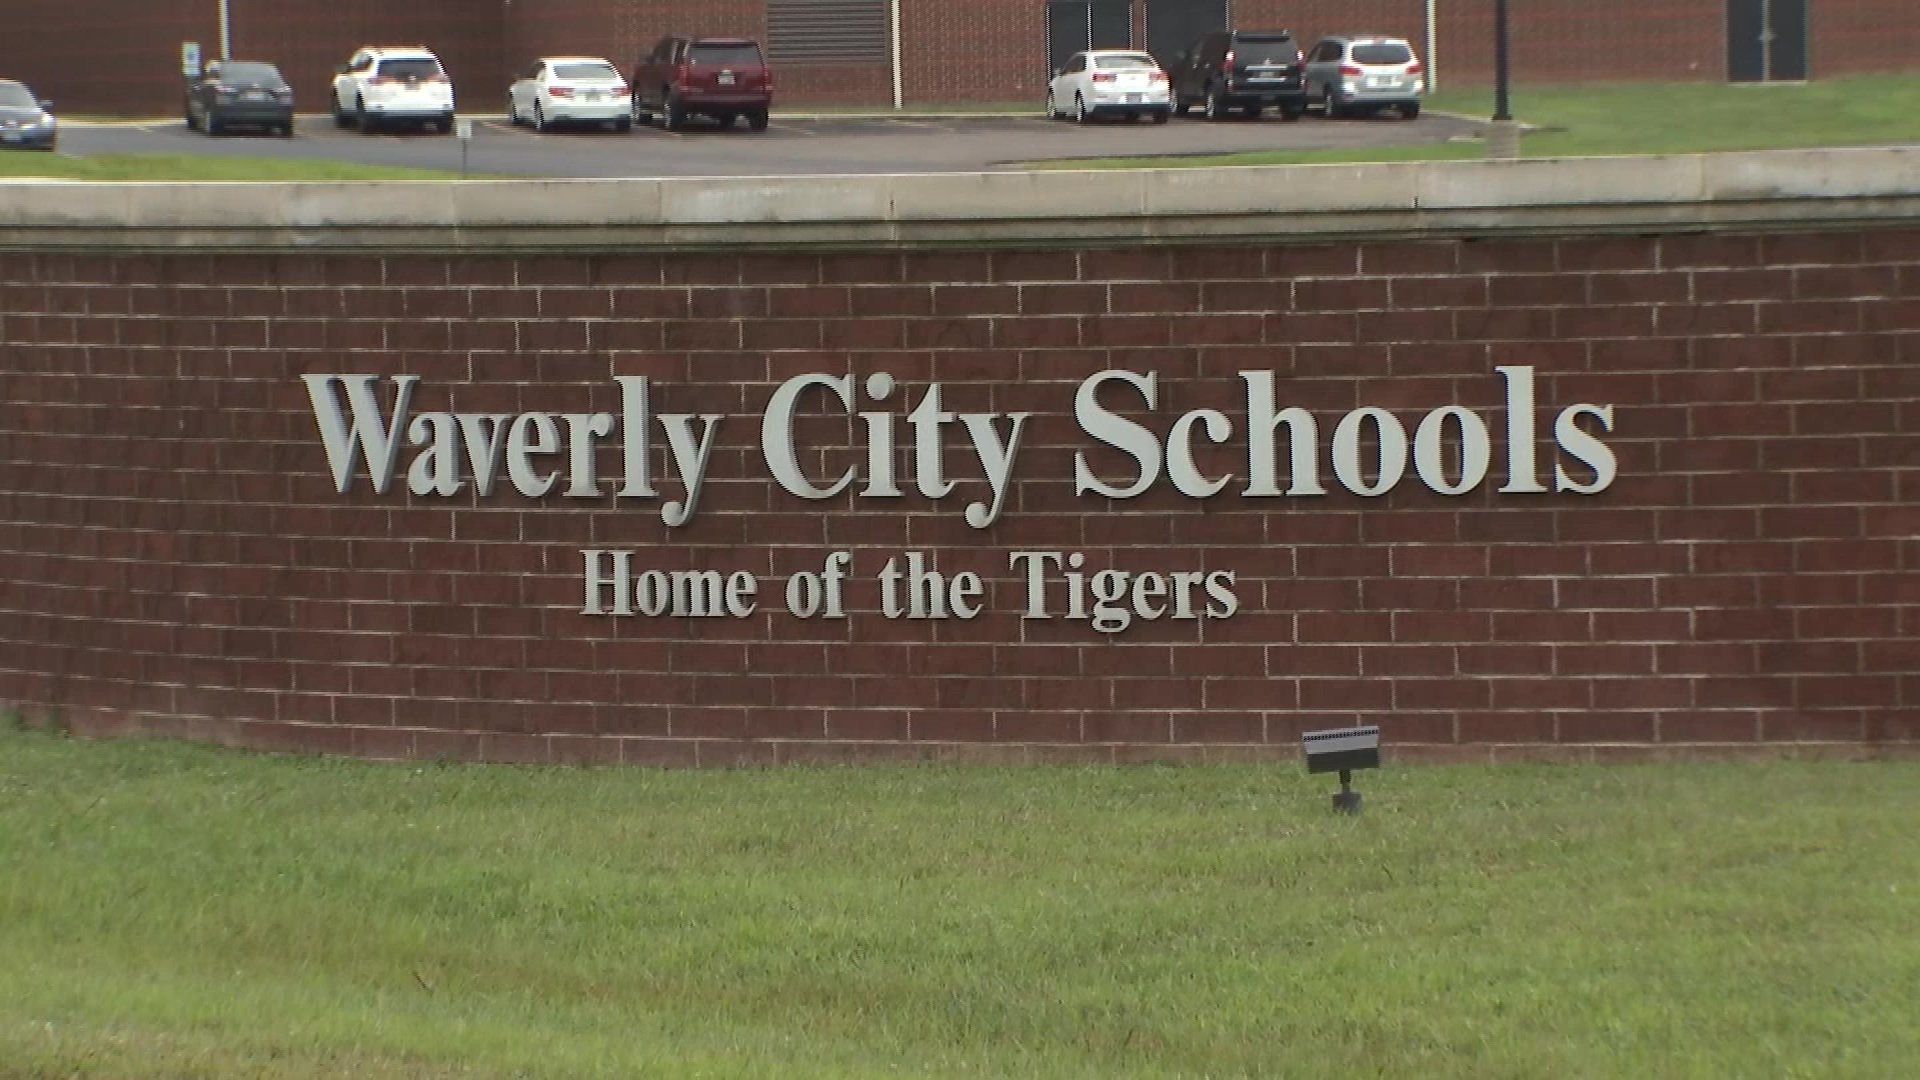 Father says Waverly schools denying individualized education